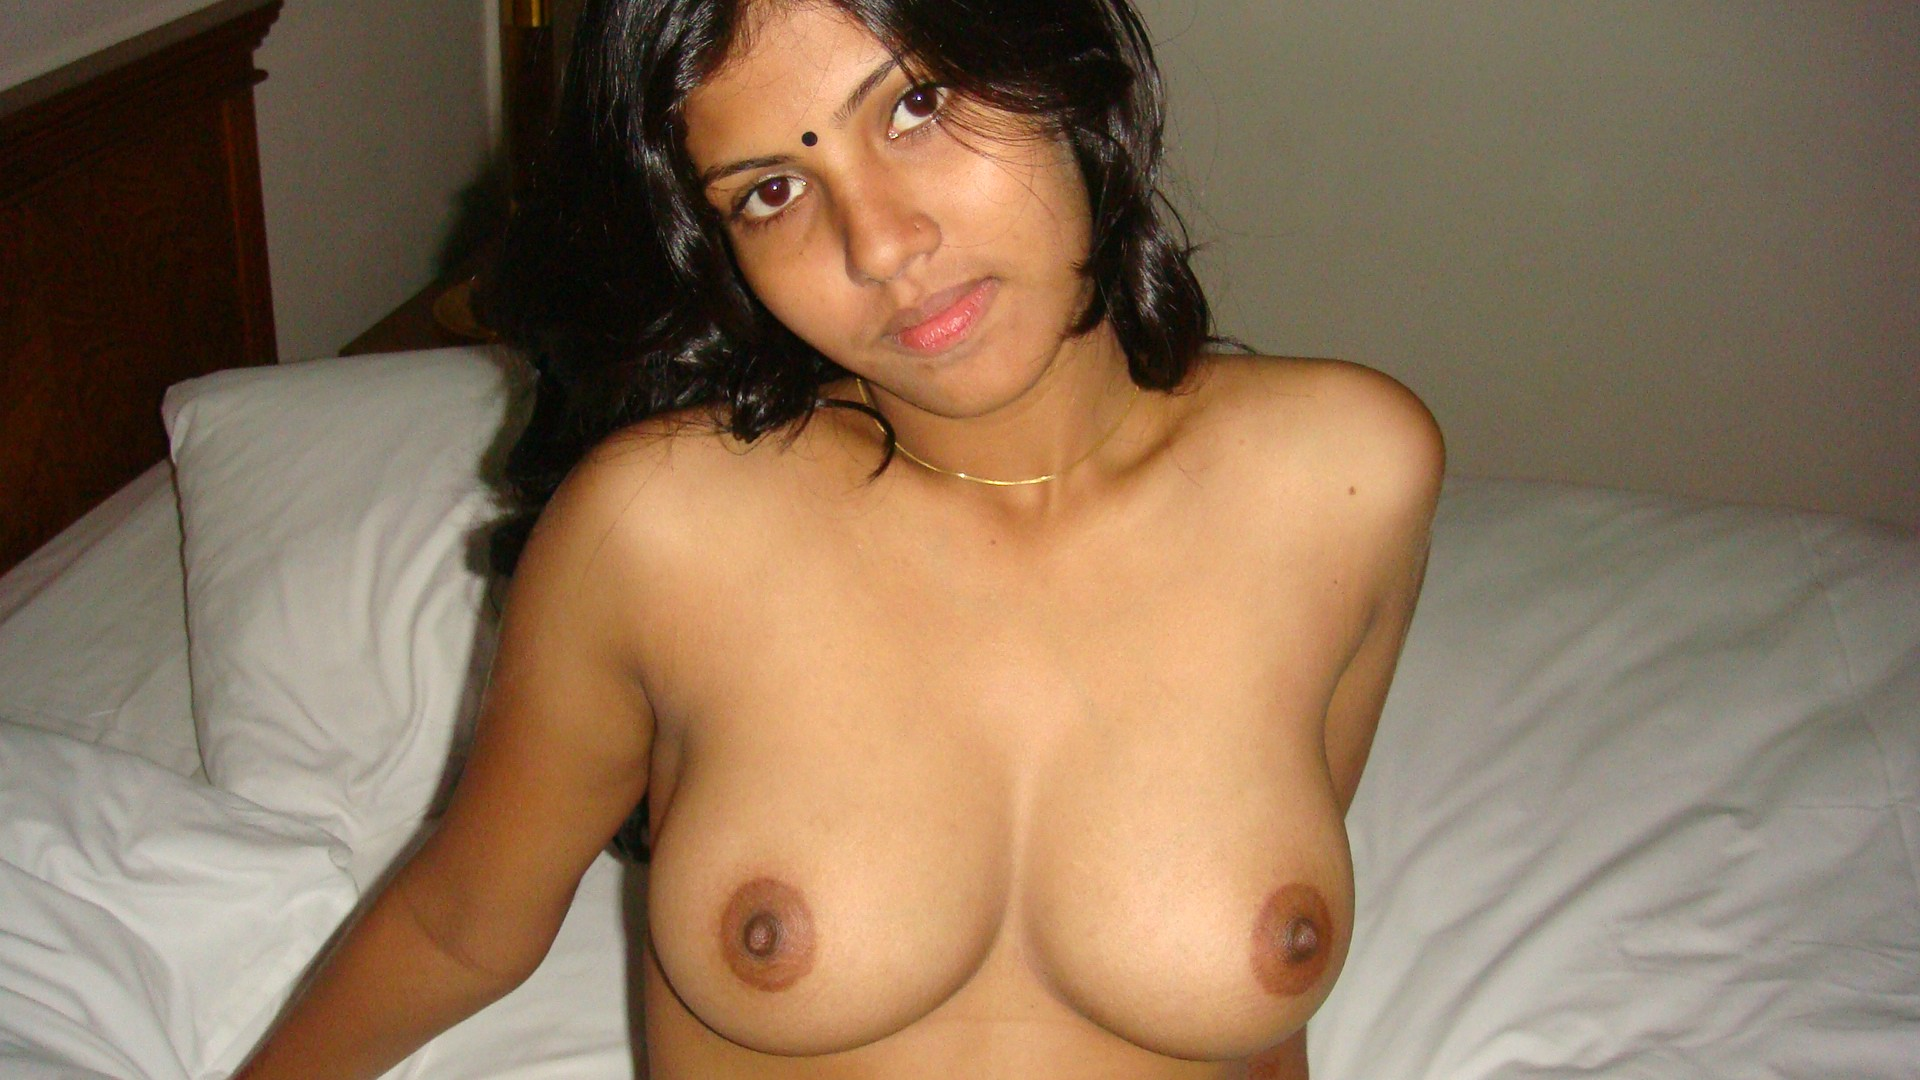 Cute pakistani girl nude sex, norwegin women nude